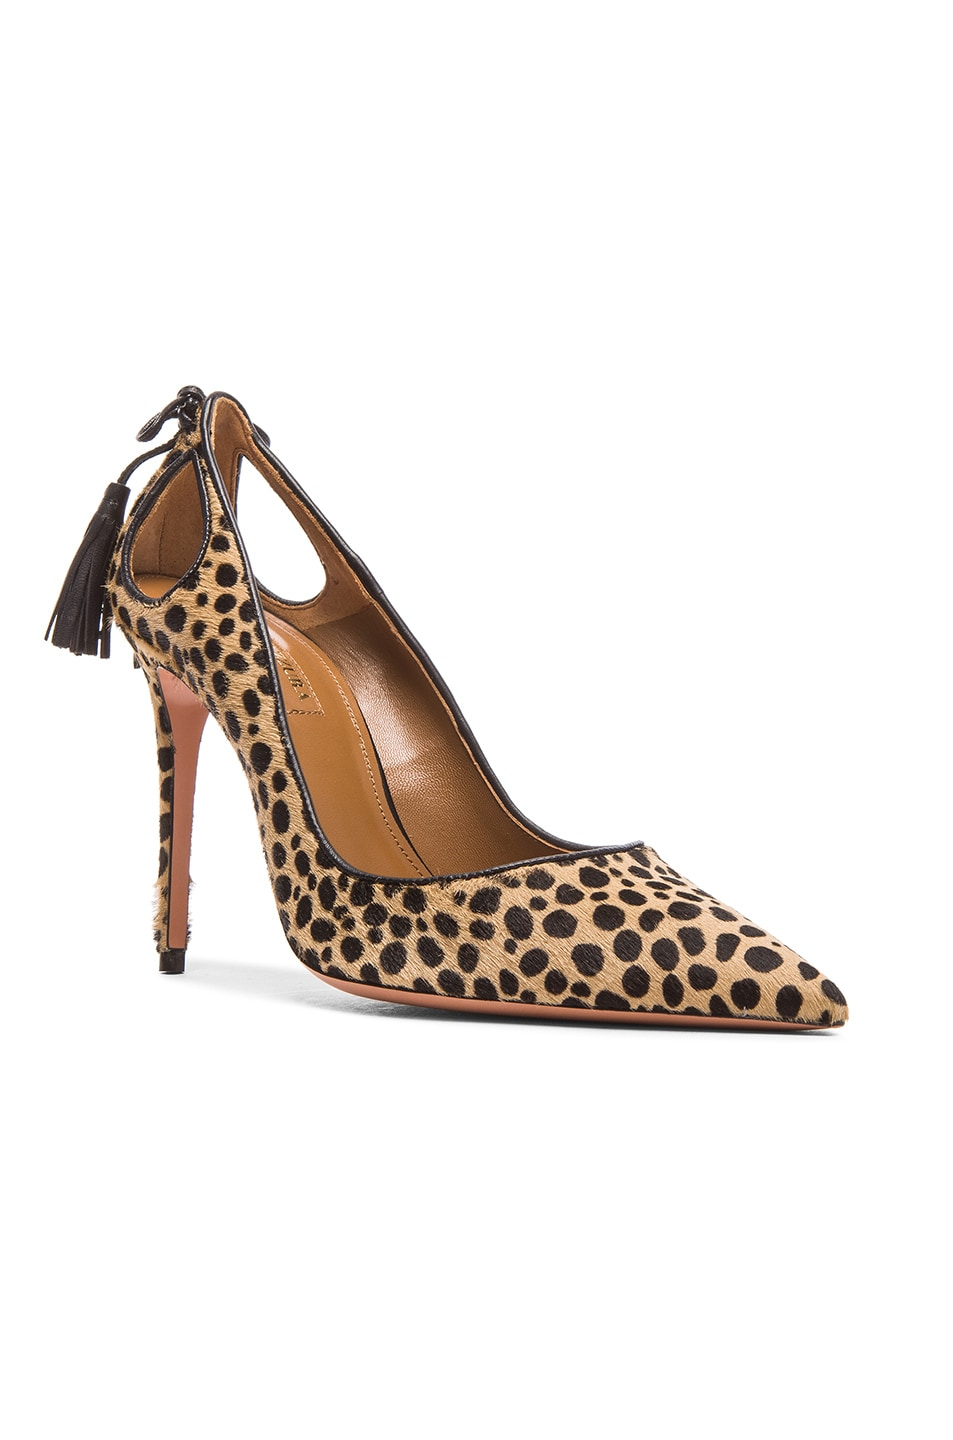 Image 2 of Aquazzura Forever Marilyn Calf Hair Heels in Cheetah